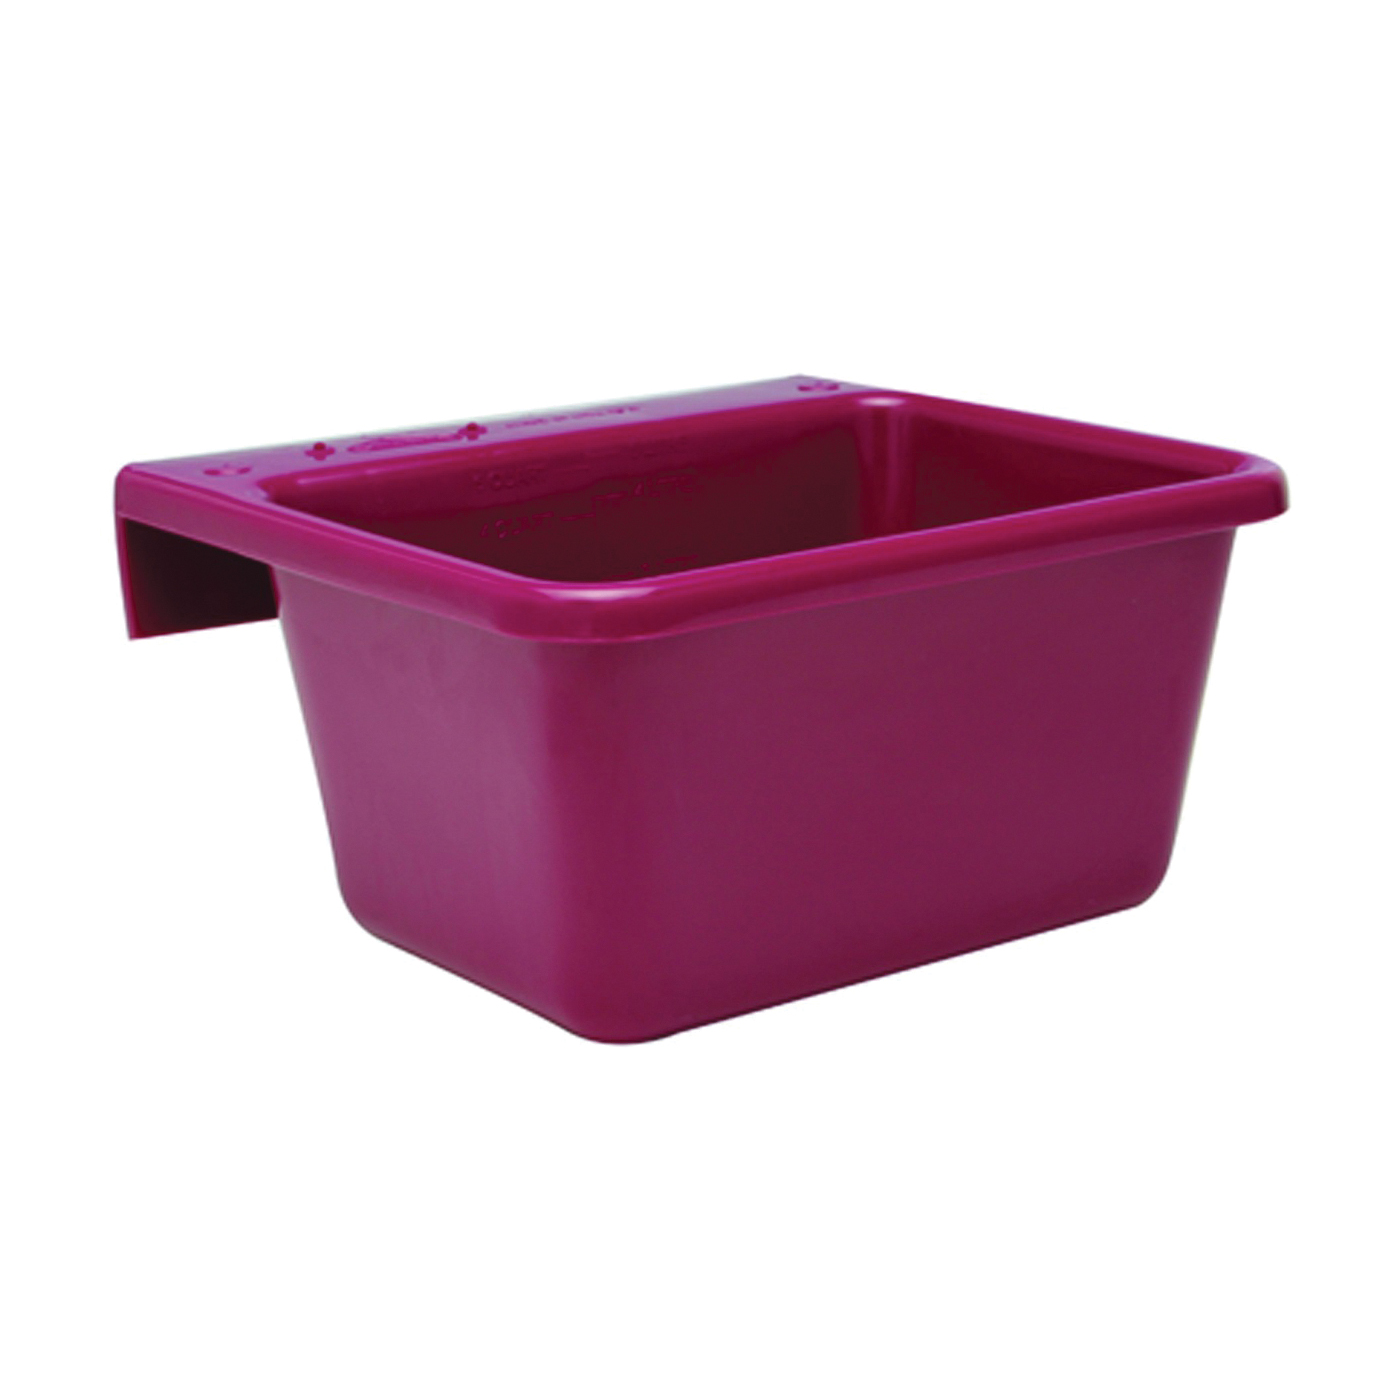 Picture of FORTEX-FORTIFLEX 1306602 Pet Feeder, S, 5 qt Volume, Red